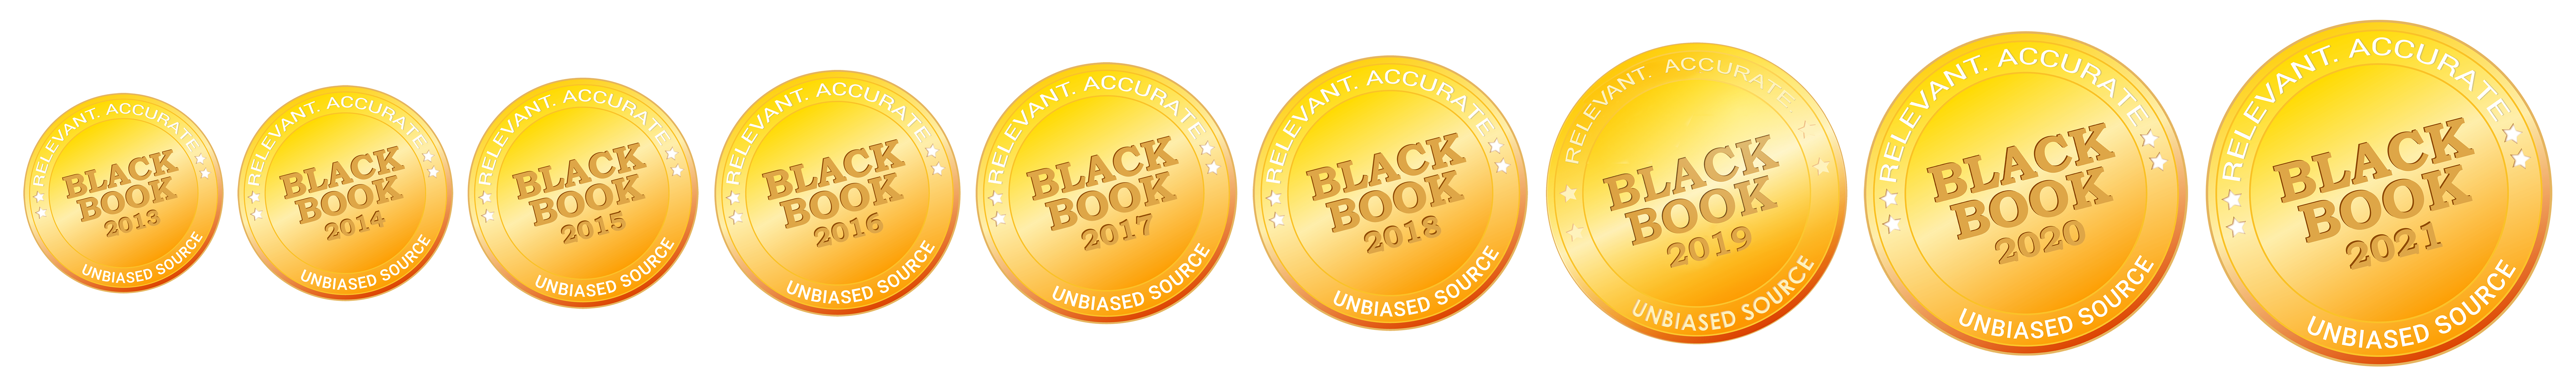 Nuance Awarded #1 End-to-End Coding, CDI, Transcription & Speech Recognition Technology Solution Rating for 8th Consecutive Year by Black Book Research